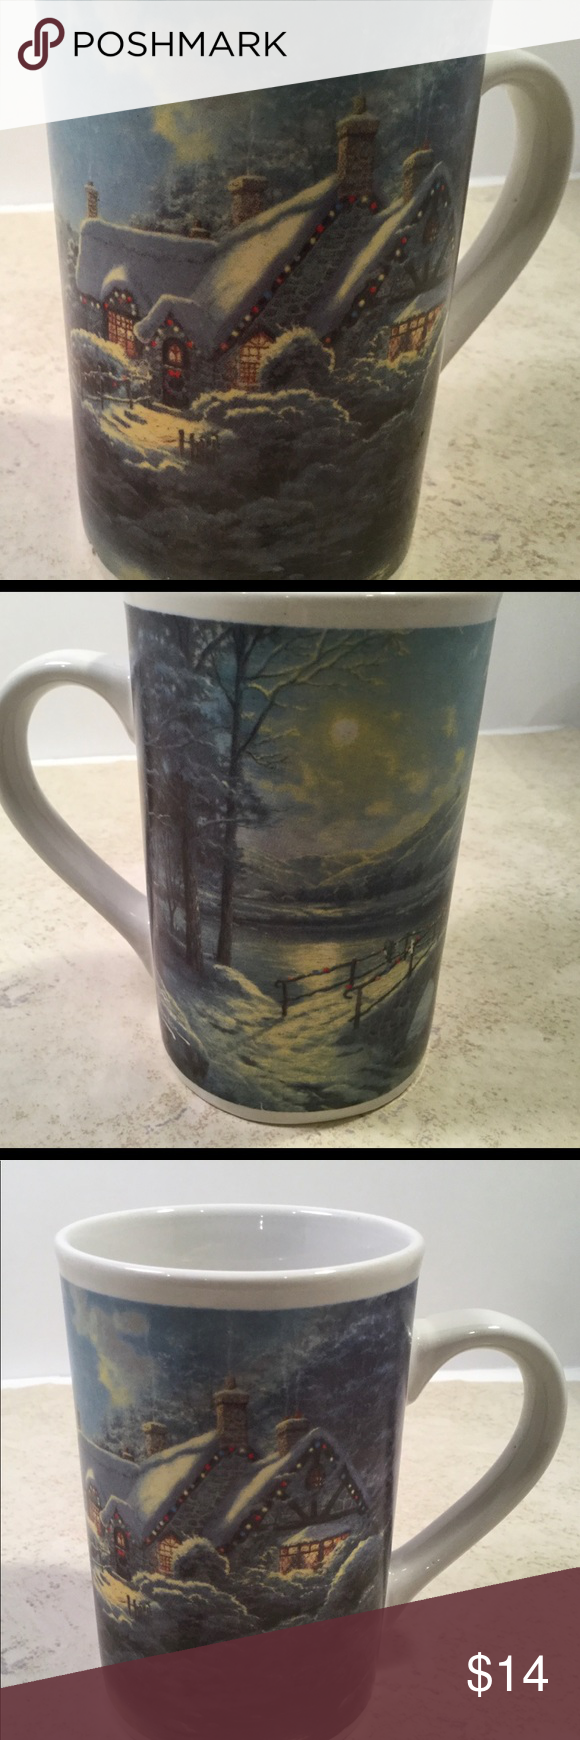 Thomas Kinkade Collectable Mug Christmas Moonlight in 2020